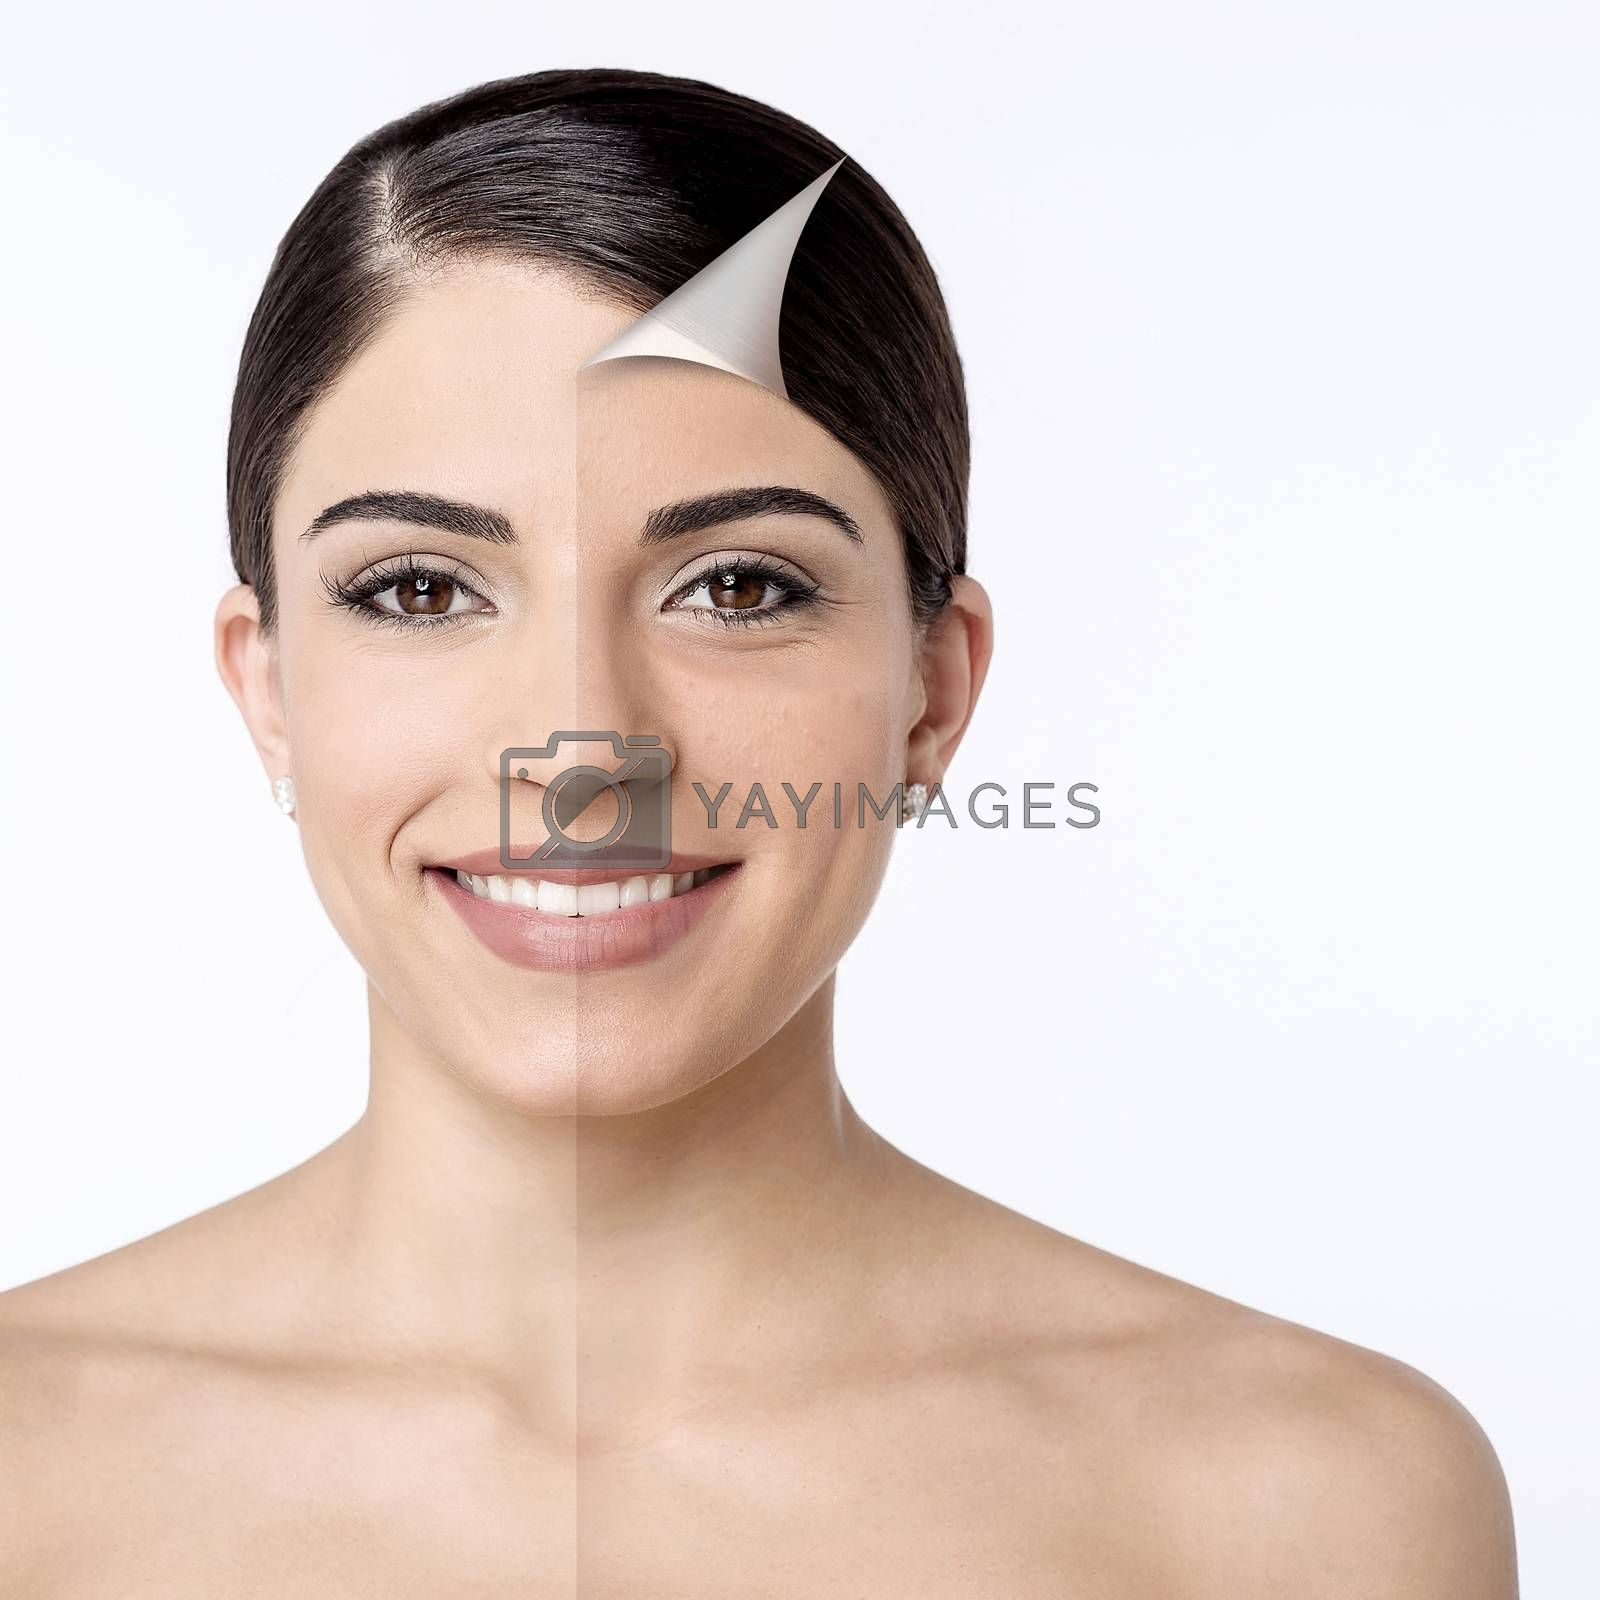 Comparison portrait of a smiling woman without and with makeup